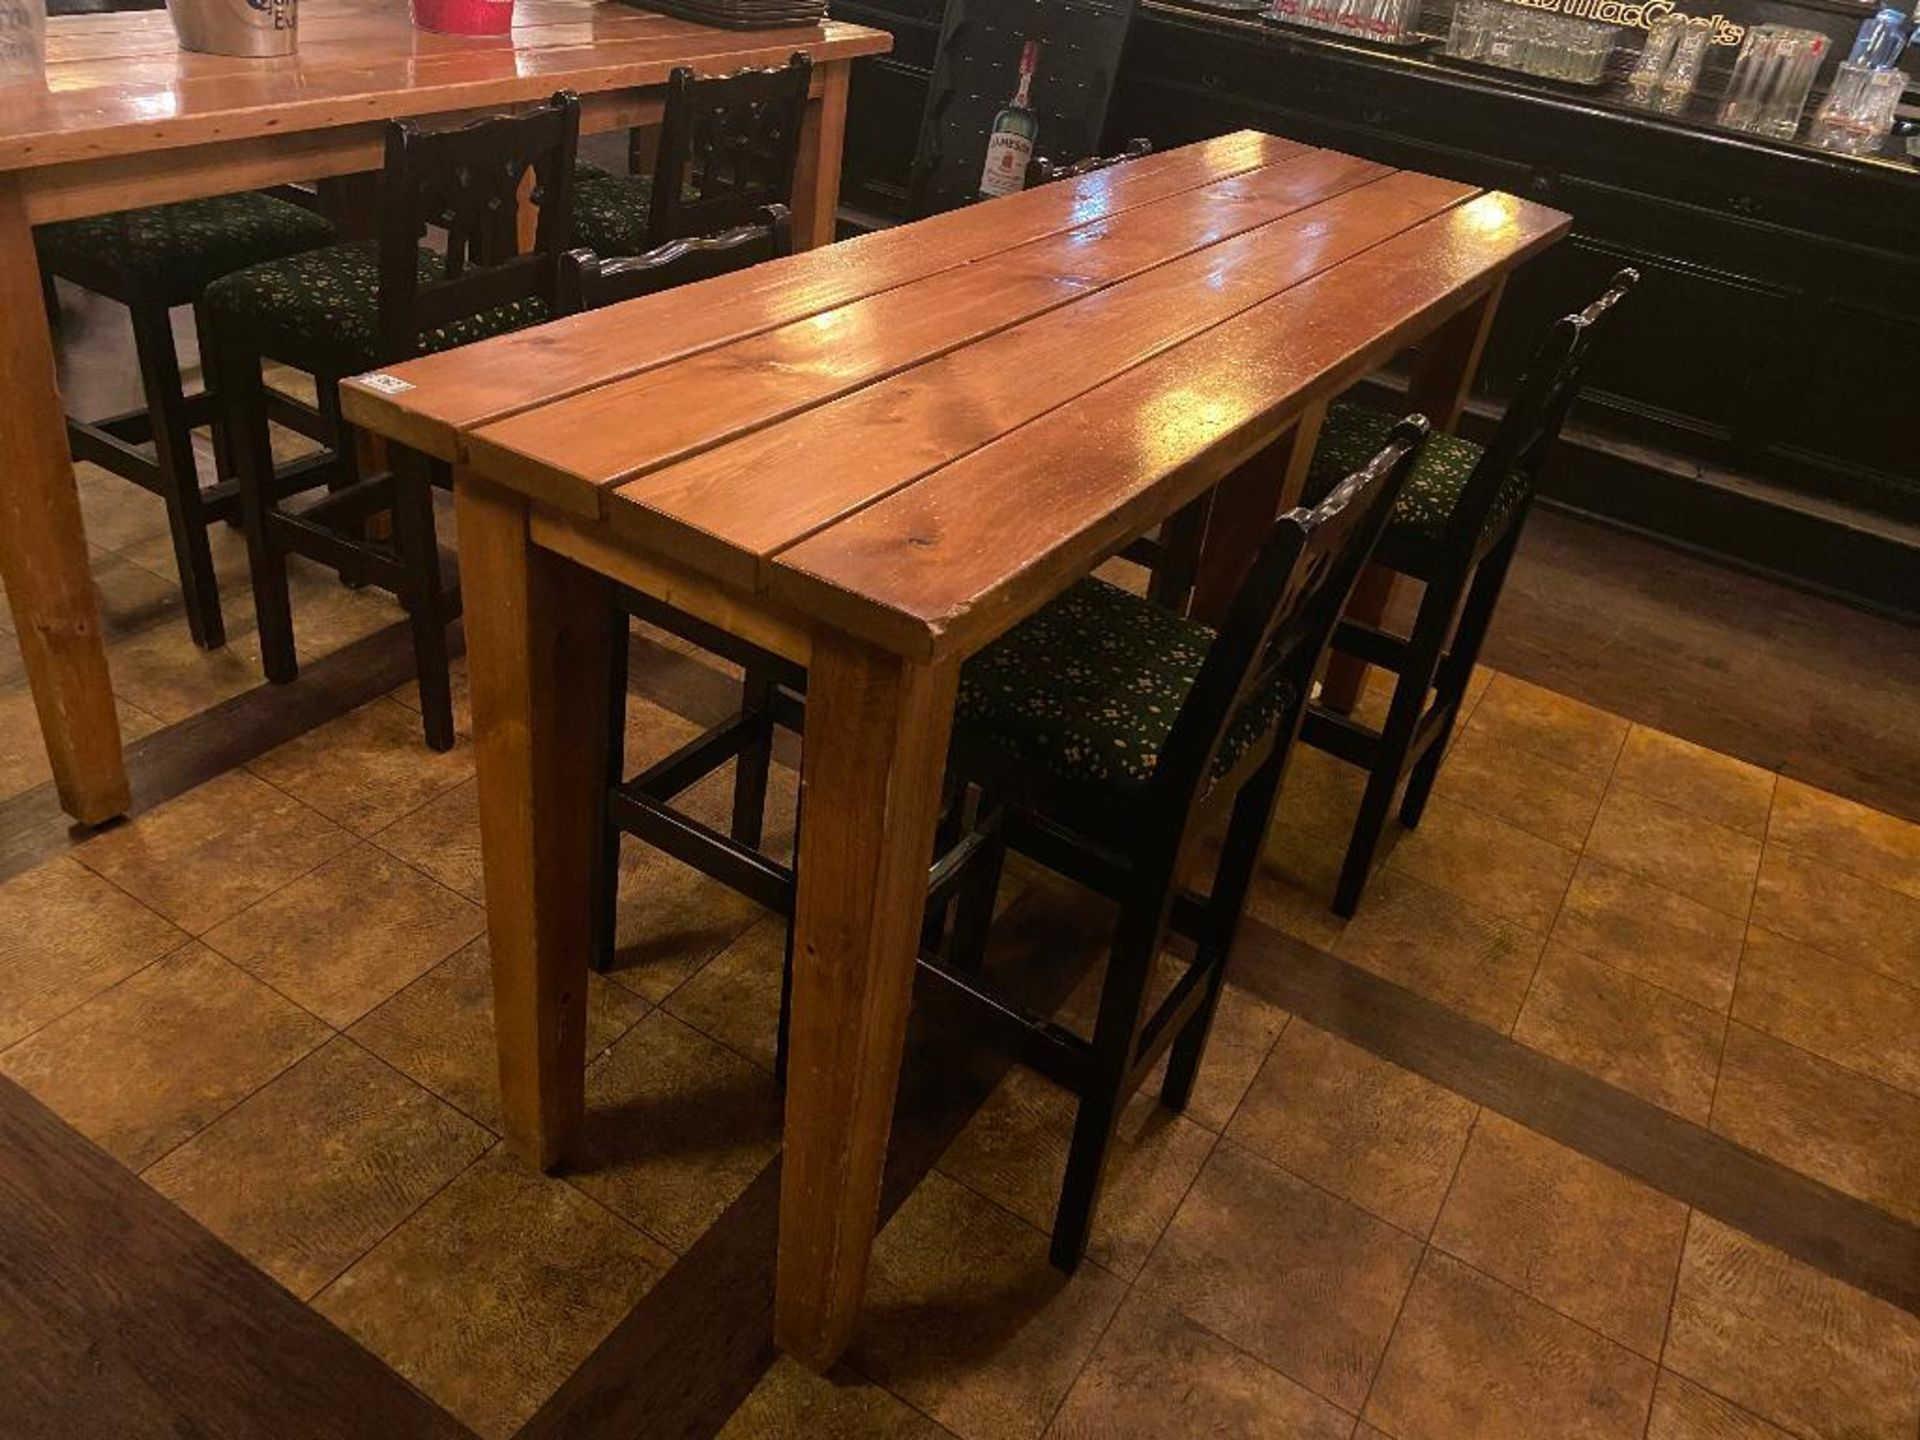 7' WOOD BAR HEIGHT TABLE WITH 4 BAR HEIGHT CHAIRS